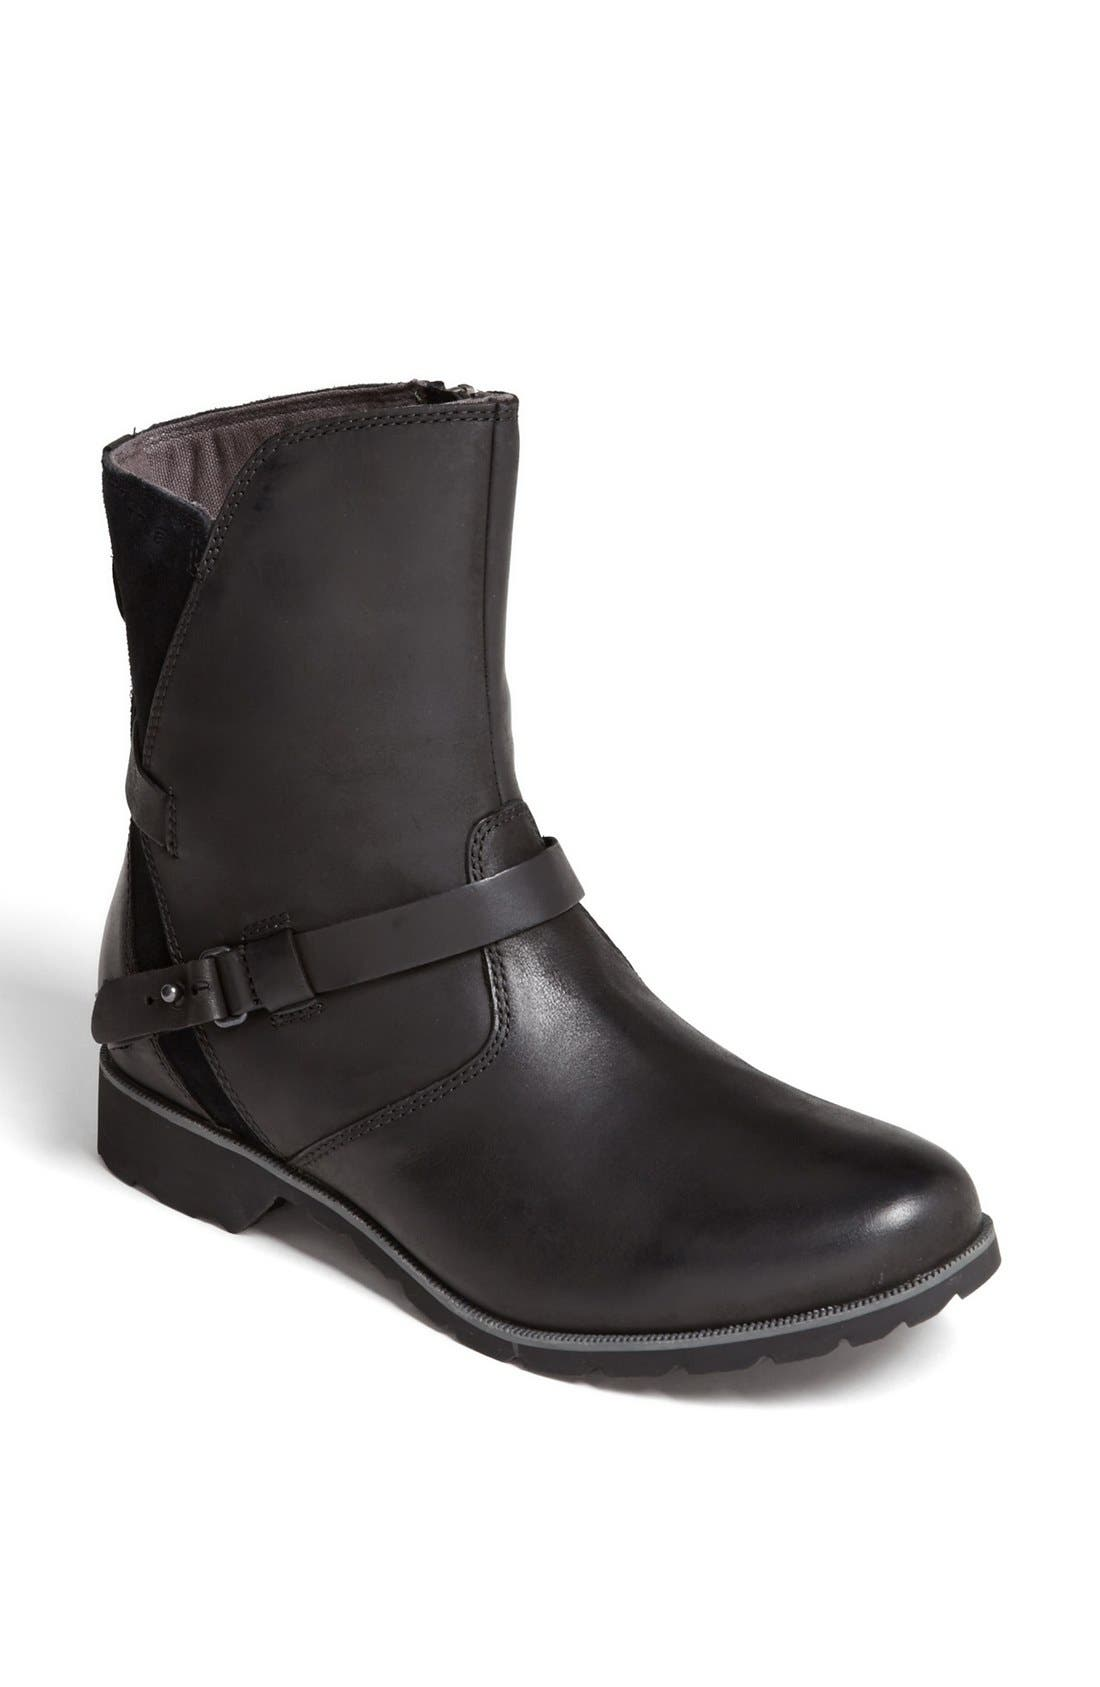 'De La Vina' Boot,                         Main,                         color,